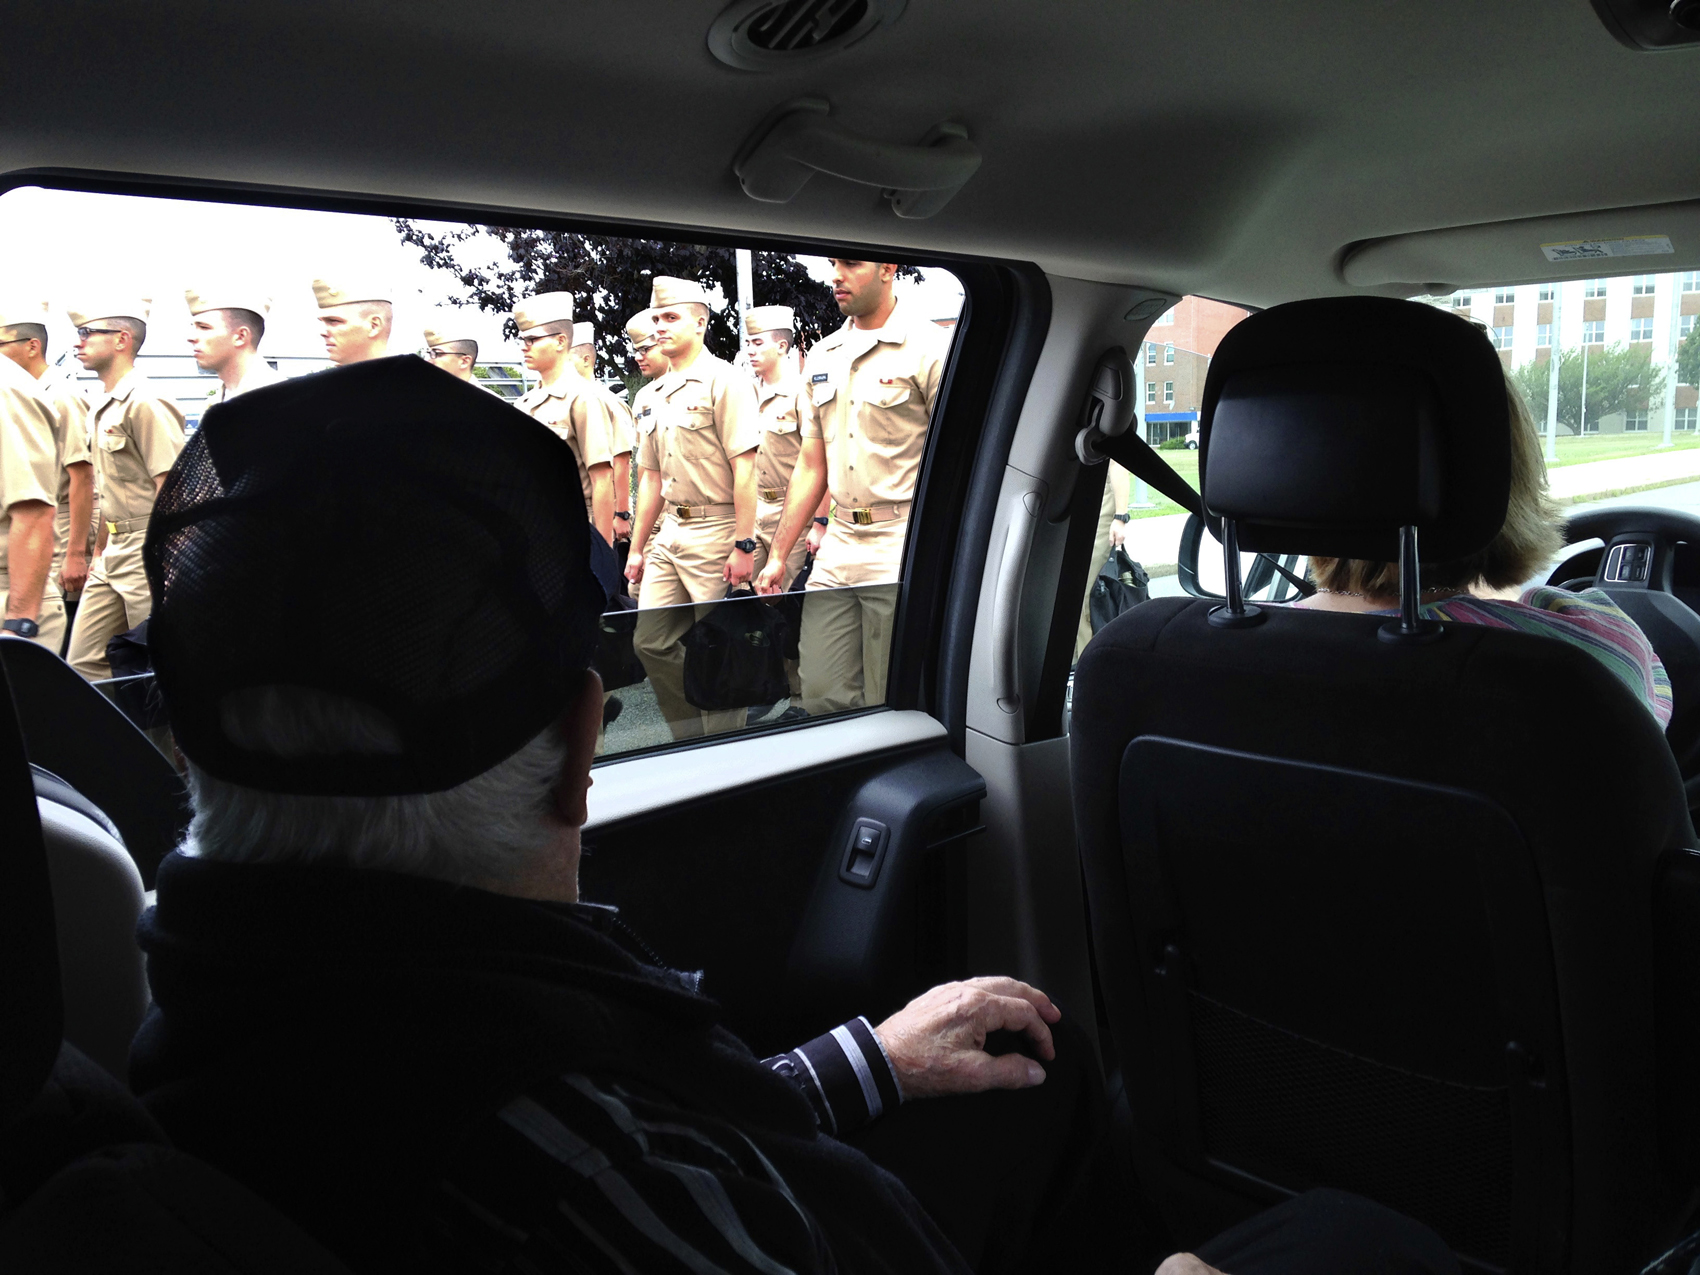 WWII veteran Edmund DelBarone looks out the window of a van while passing an officer candidate class during a tour at Naval Station Newport, in Newport, R.I., Thursday July 27, 2017. DelBarone, a 96-year-old World War II veteran, once dreamed of returning to a Navy installation to reminisce about his naval career, and help of a nonprofit it has become a reality. (Jennifer McDermott/AP)